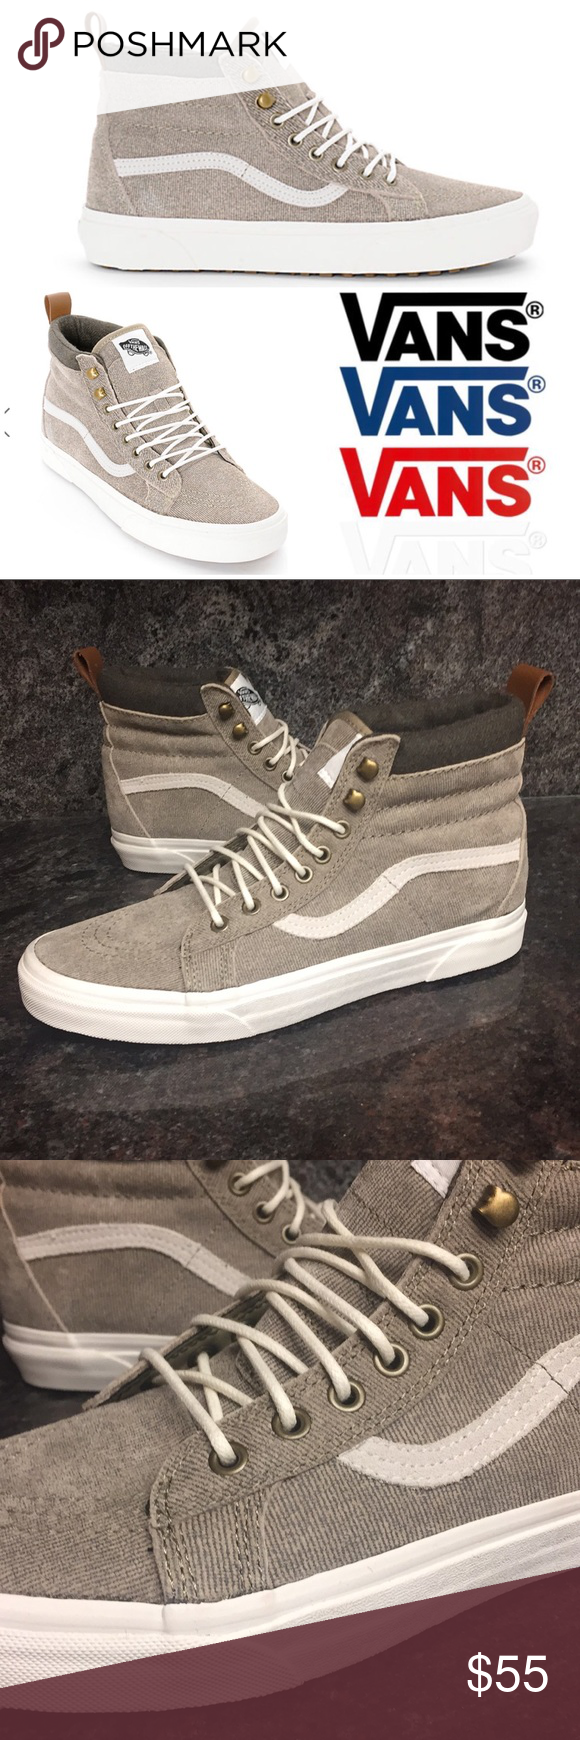 ... incredible prices 397da 9460c Vans SK8-Hi MTE Denim Suede Coriander  Shoes Vans SK8- ... 0b546a3906e3